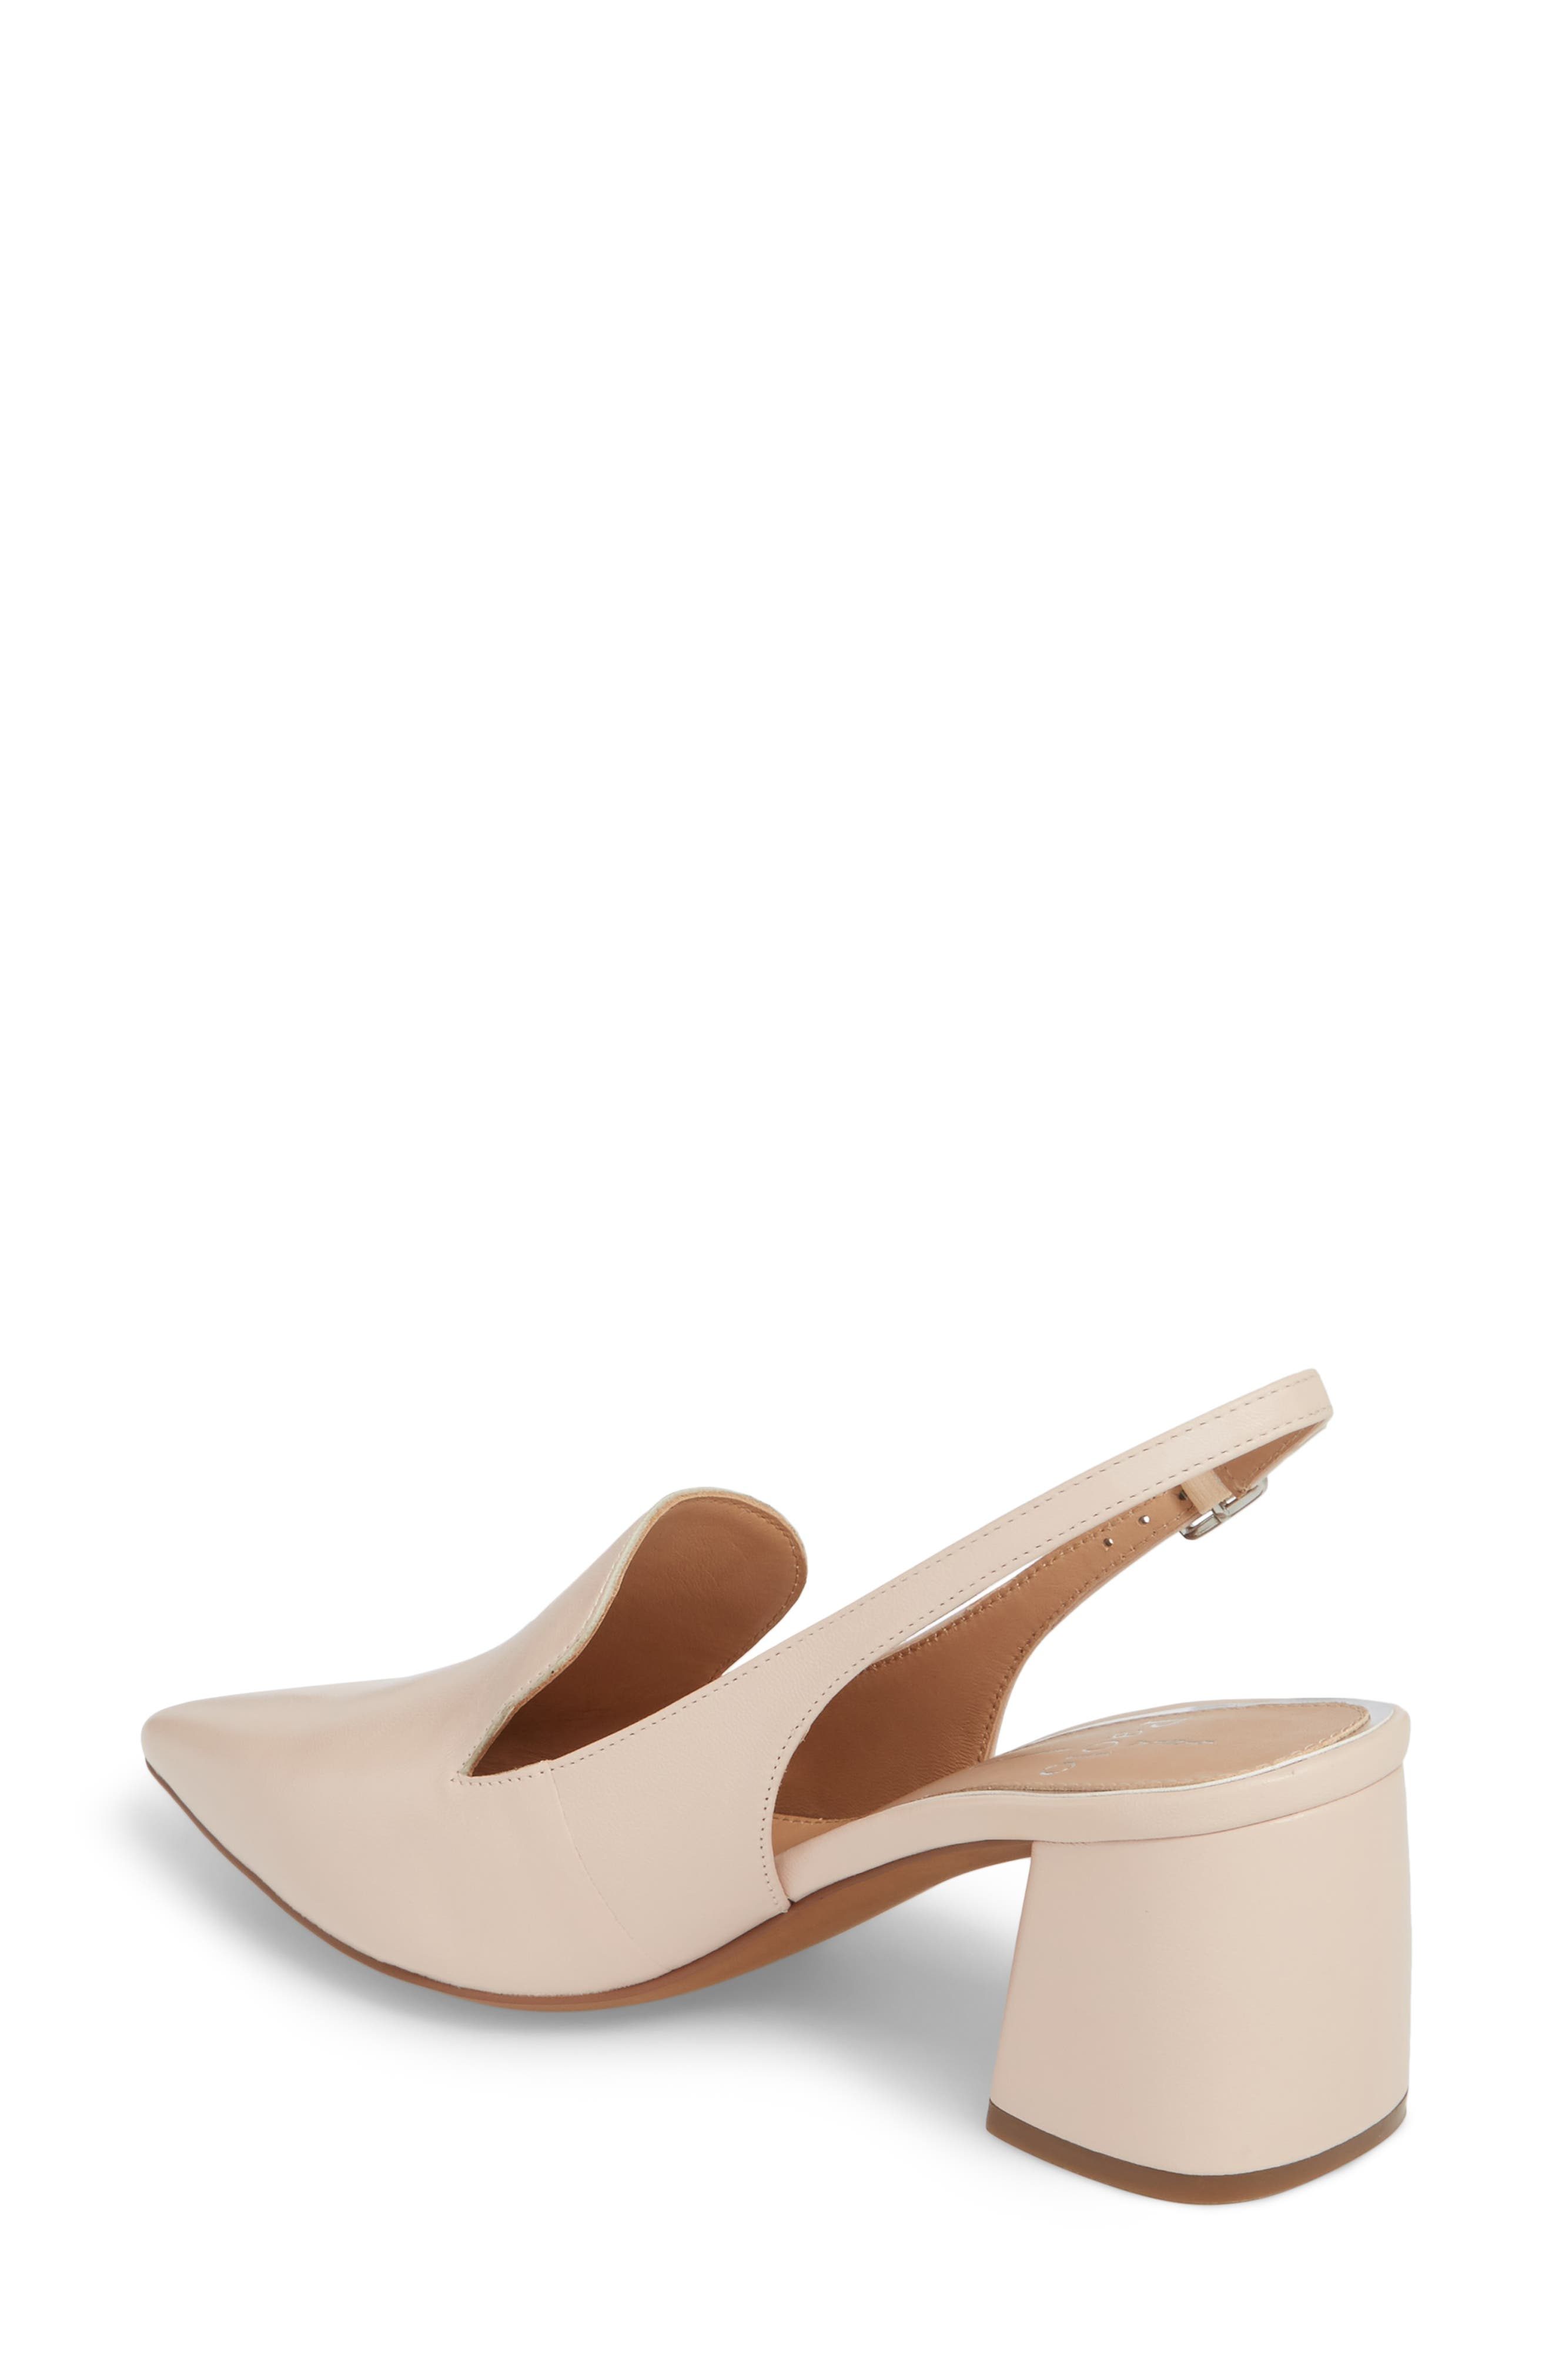 Carly Slingback Pump,                             Alternate thumbnail 2, color,                             Pale Pink Leather